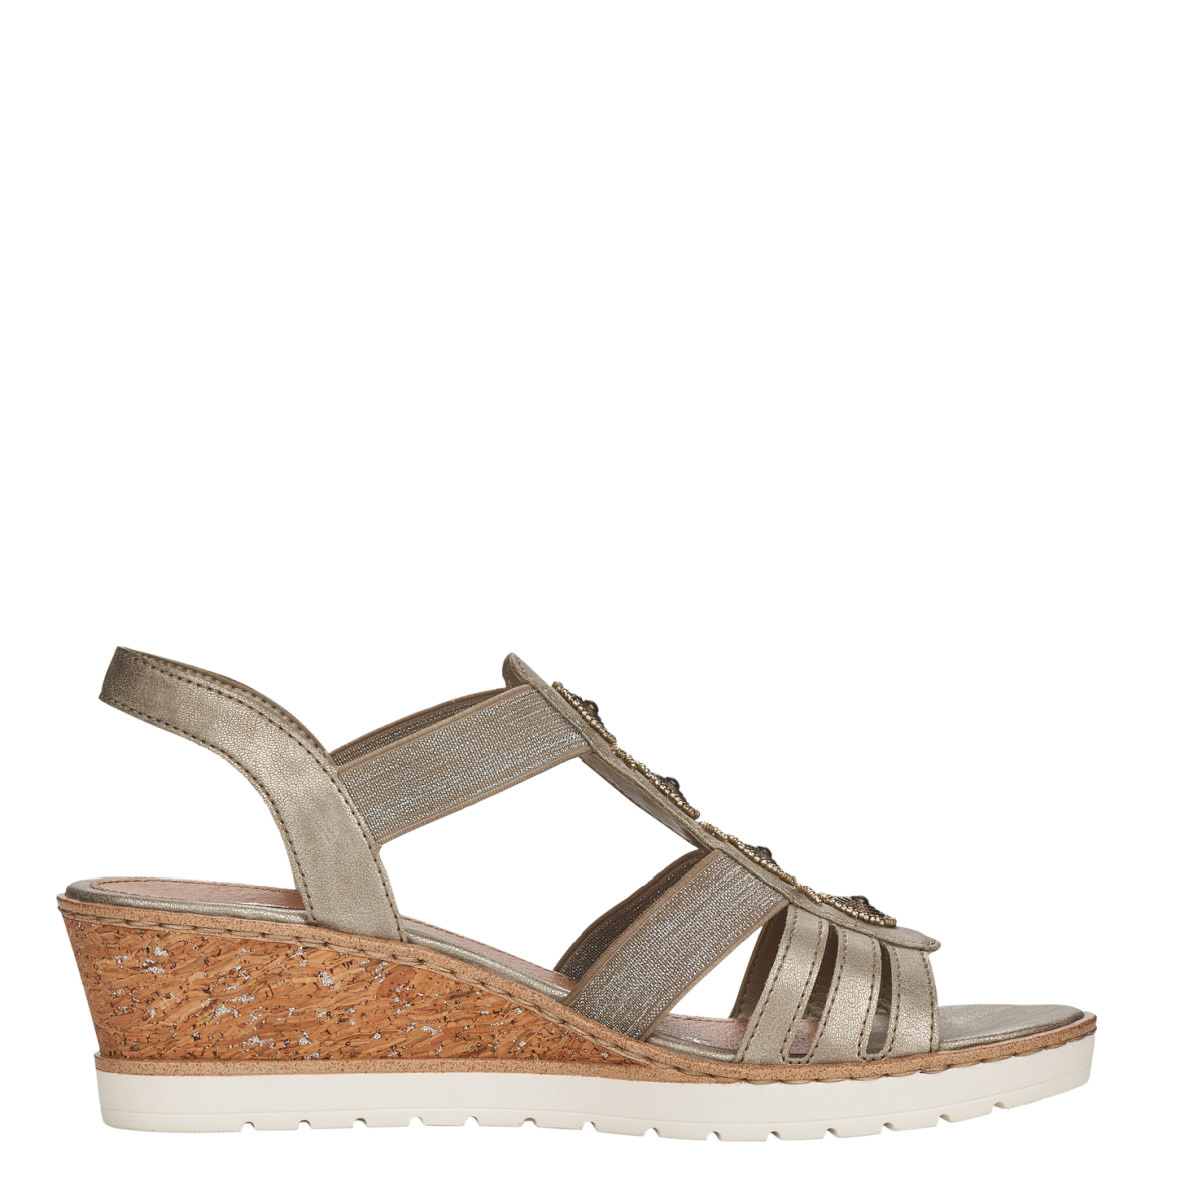 Remonte Remonte R6256-90 Wedge Sandal Gold